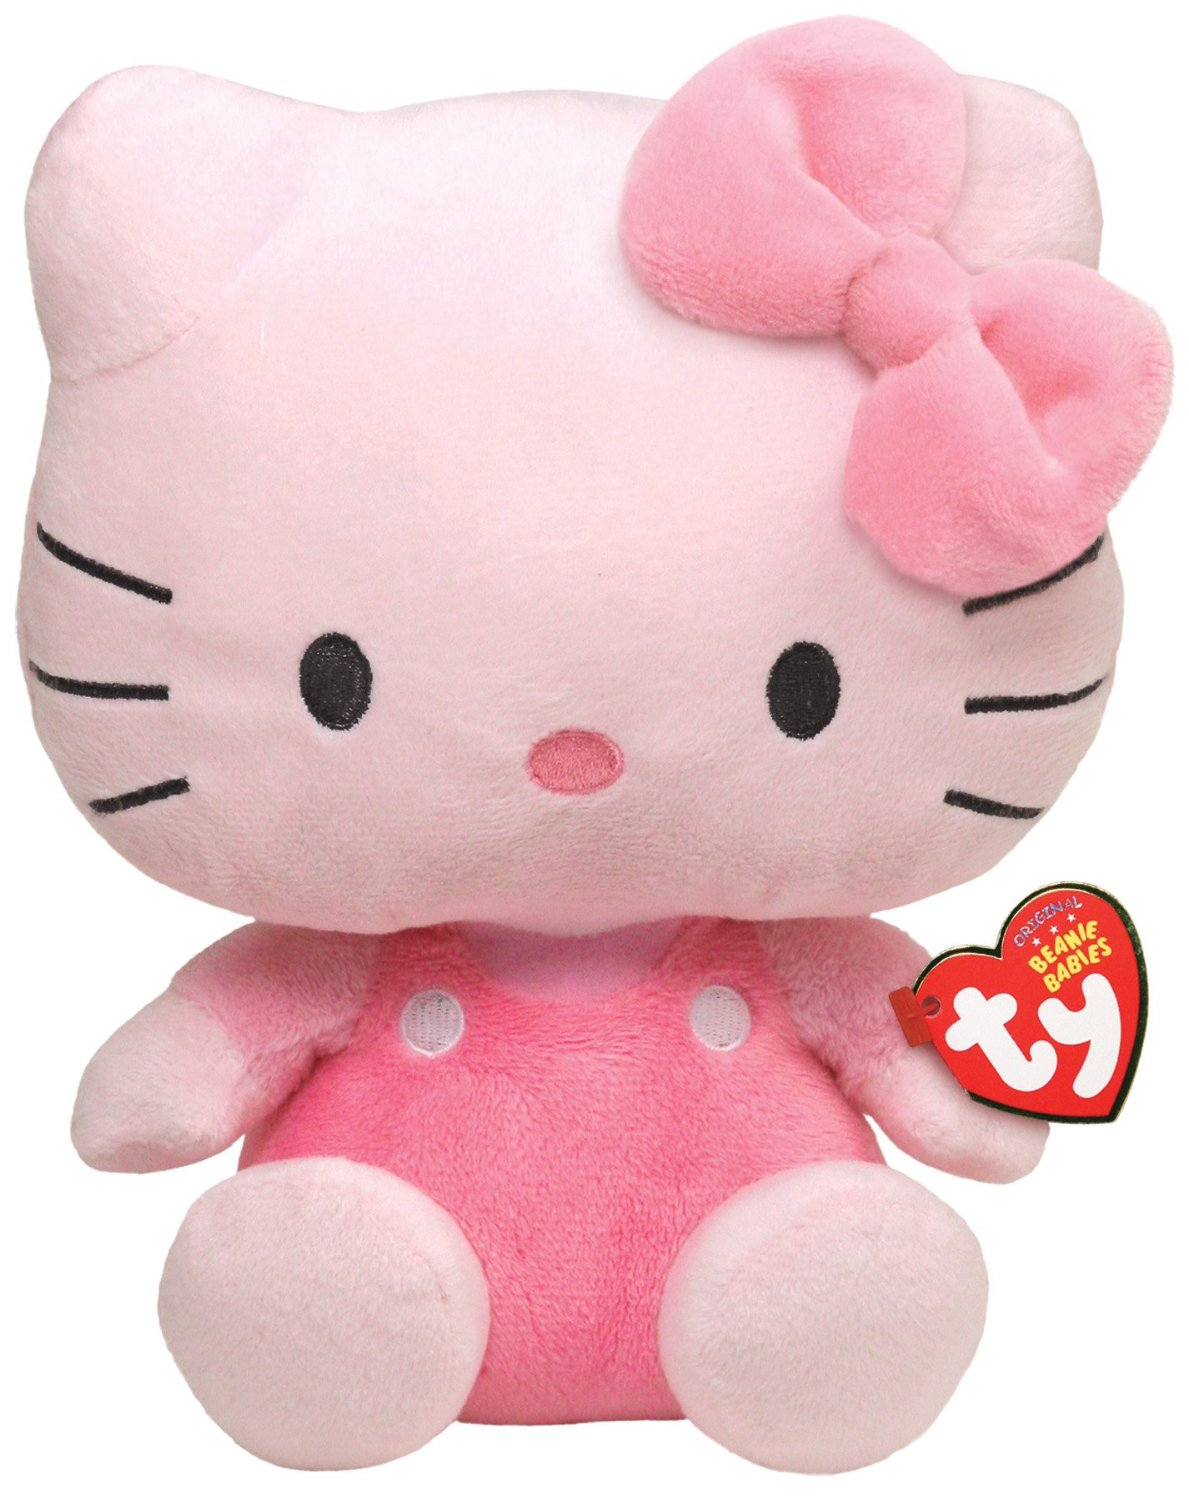 cd2166c5407 Get Quotations · TY Beanie Baby Hello Kitty - All Pink